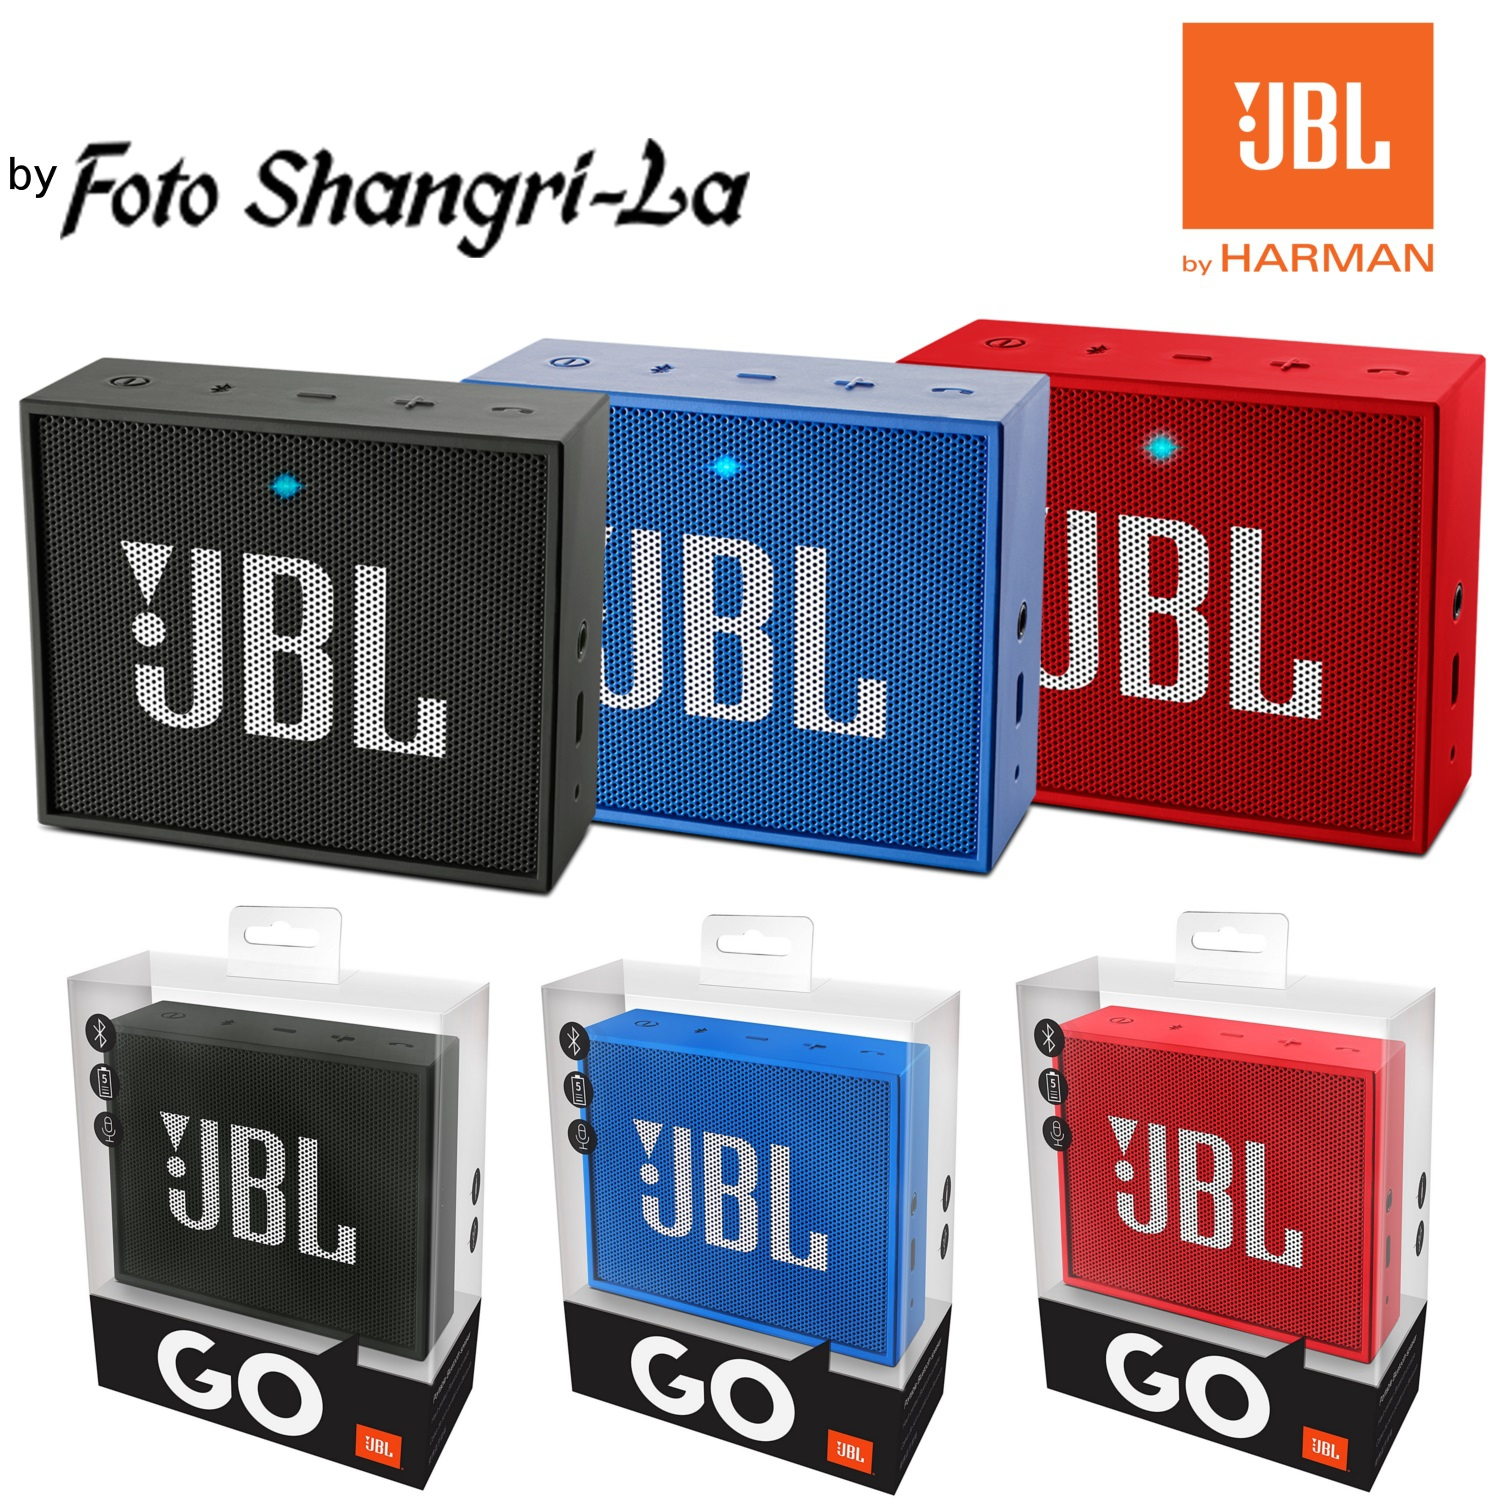 Jbl Go Rechargeable Portable Wirele End 10 31 2020 447 Pm Speaker Mini Wireless Charger 1 Bluetooth Original Yea